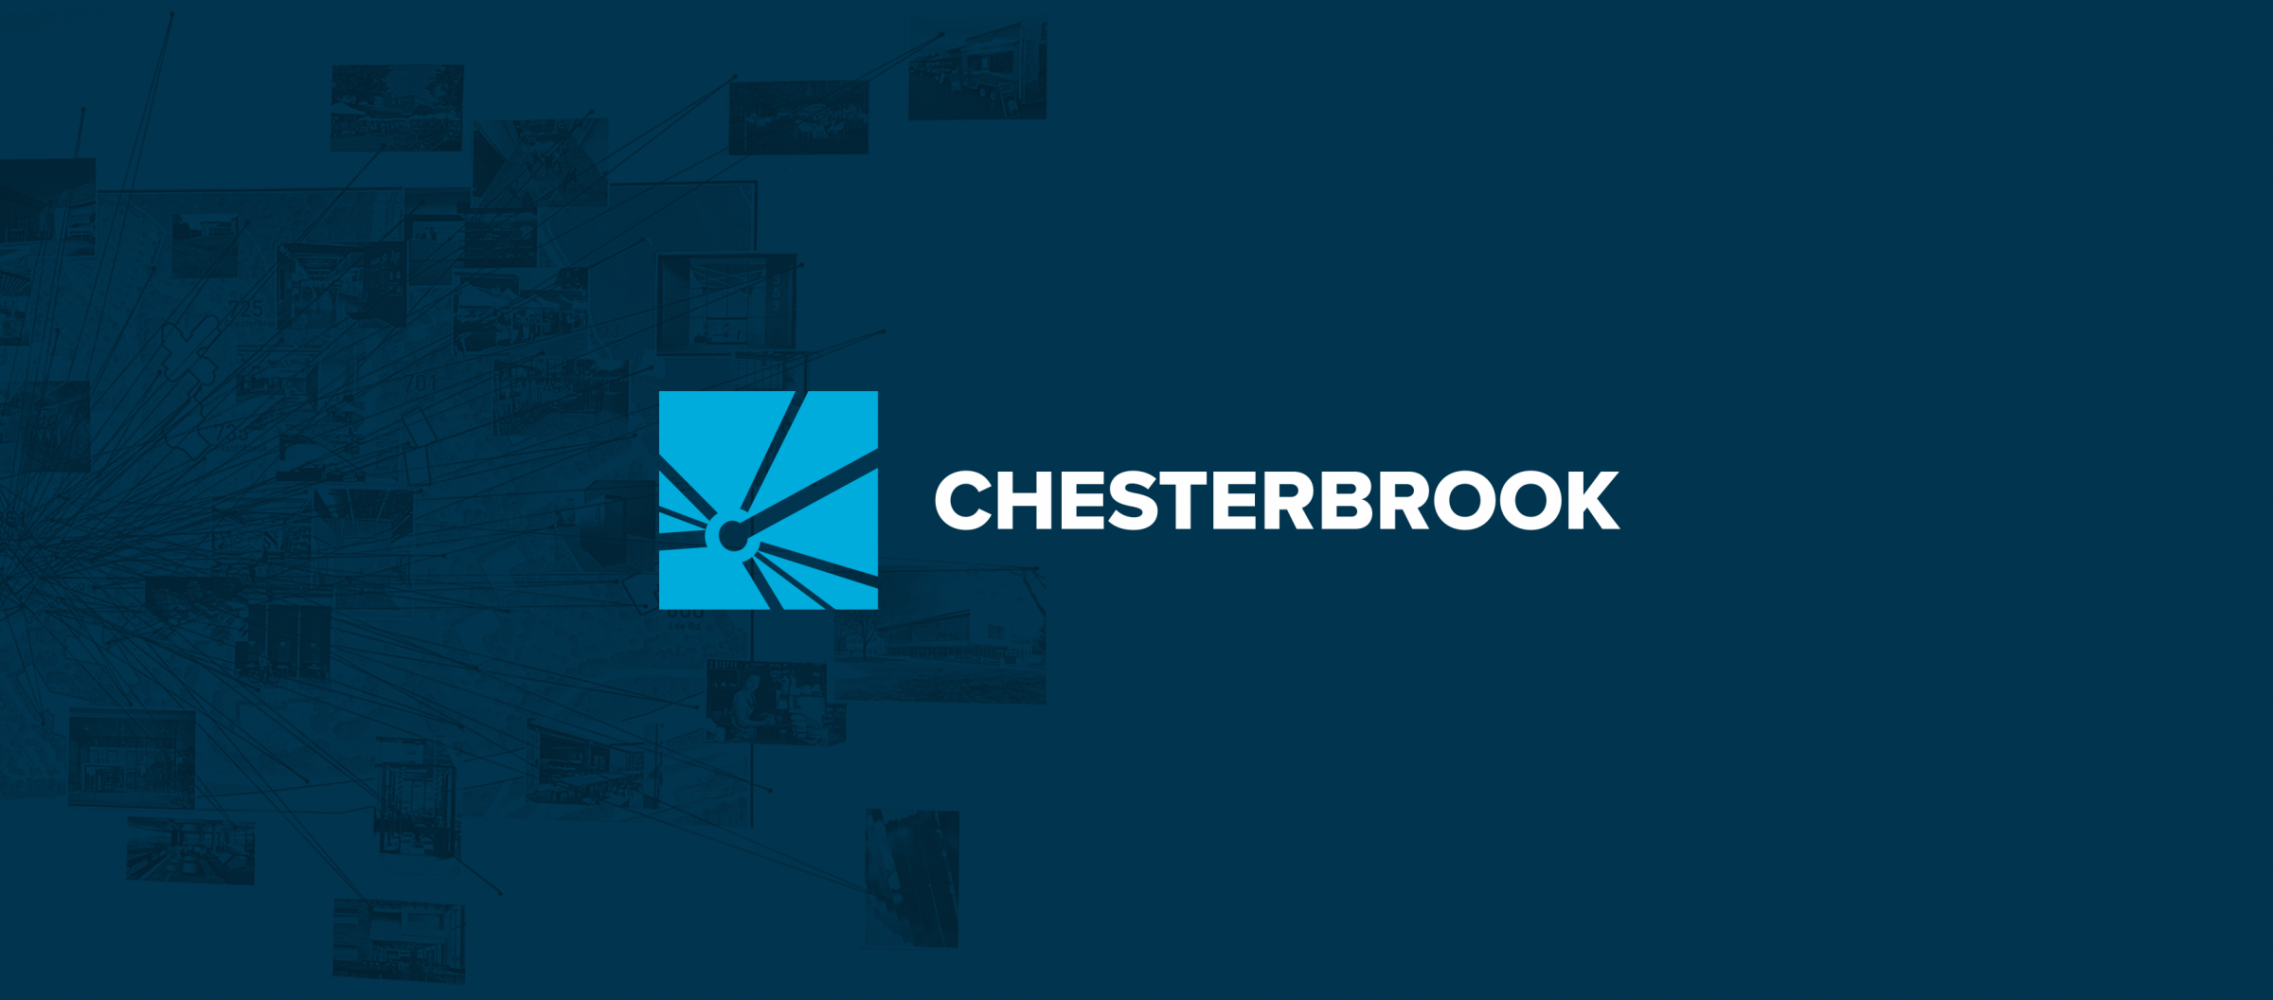 Chesterbrook